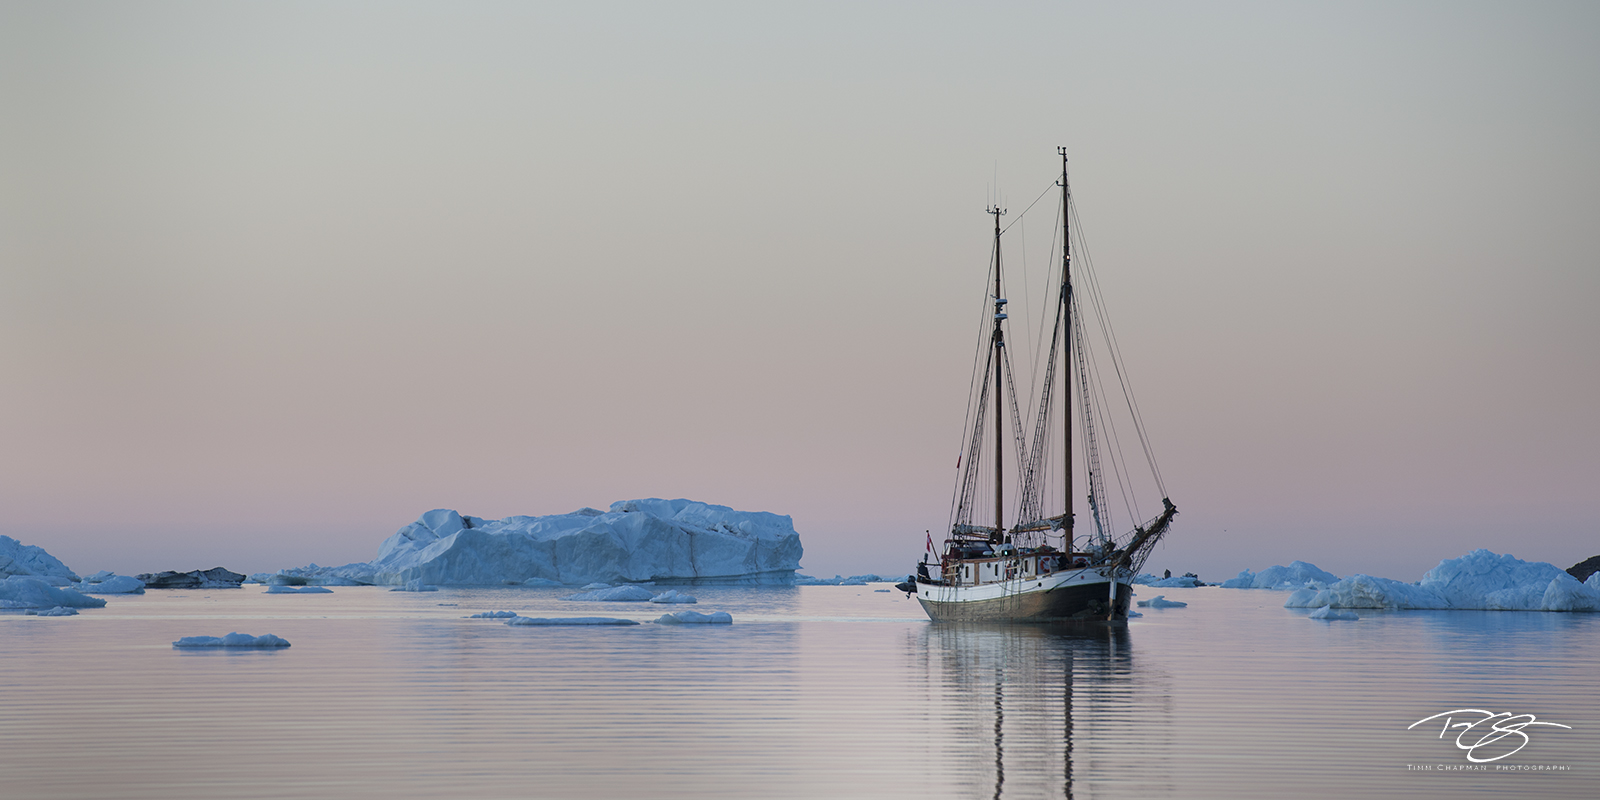 The Donna Wood, a near hundred year old sailing ship. navigates around icebergs in search of safe harbour at 1:30 in the morning...